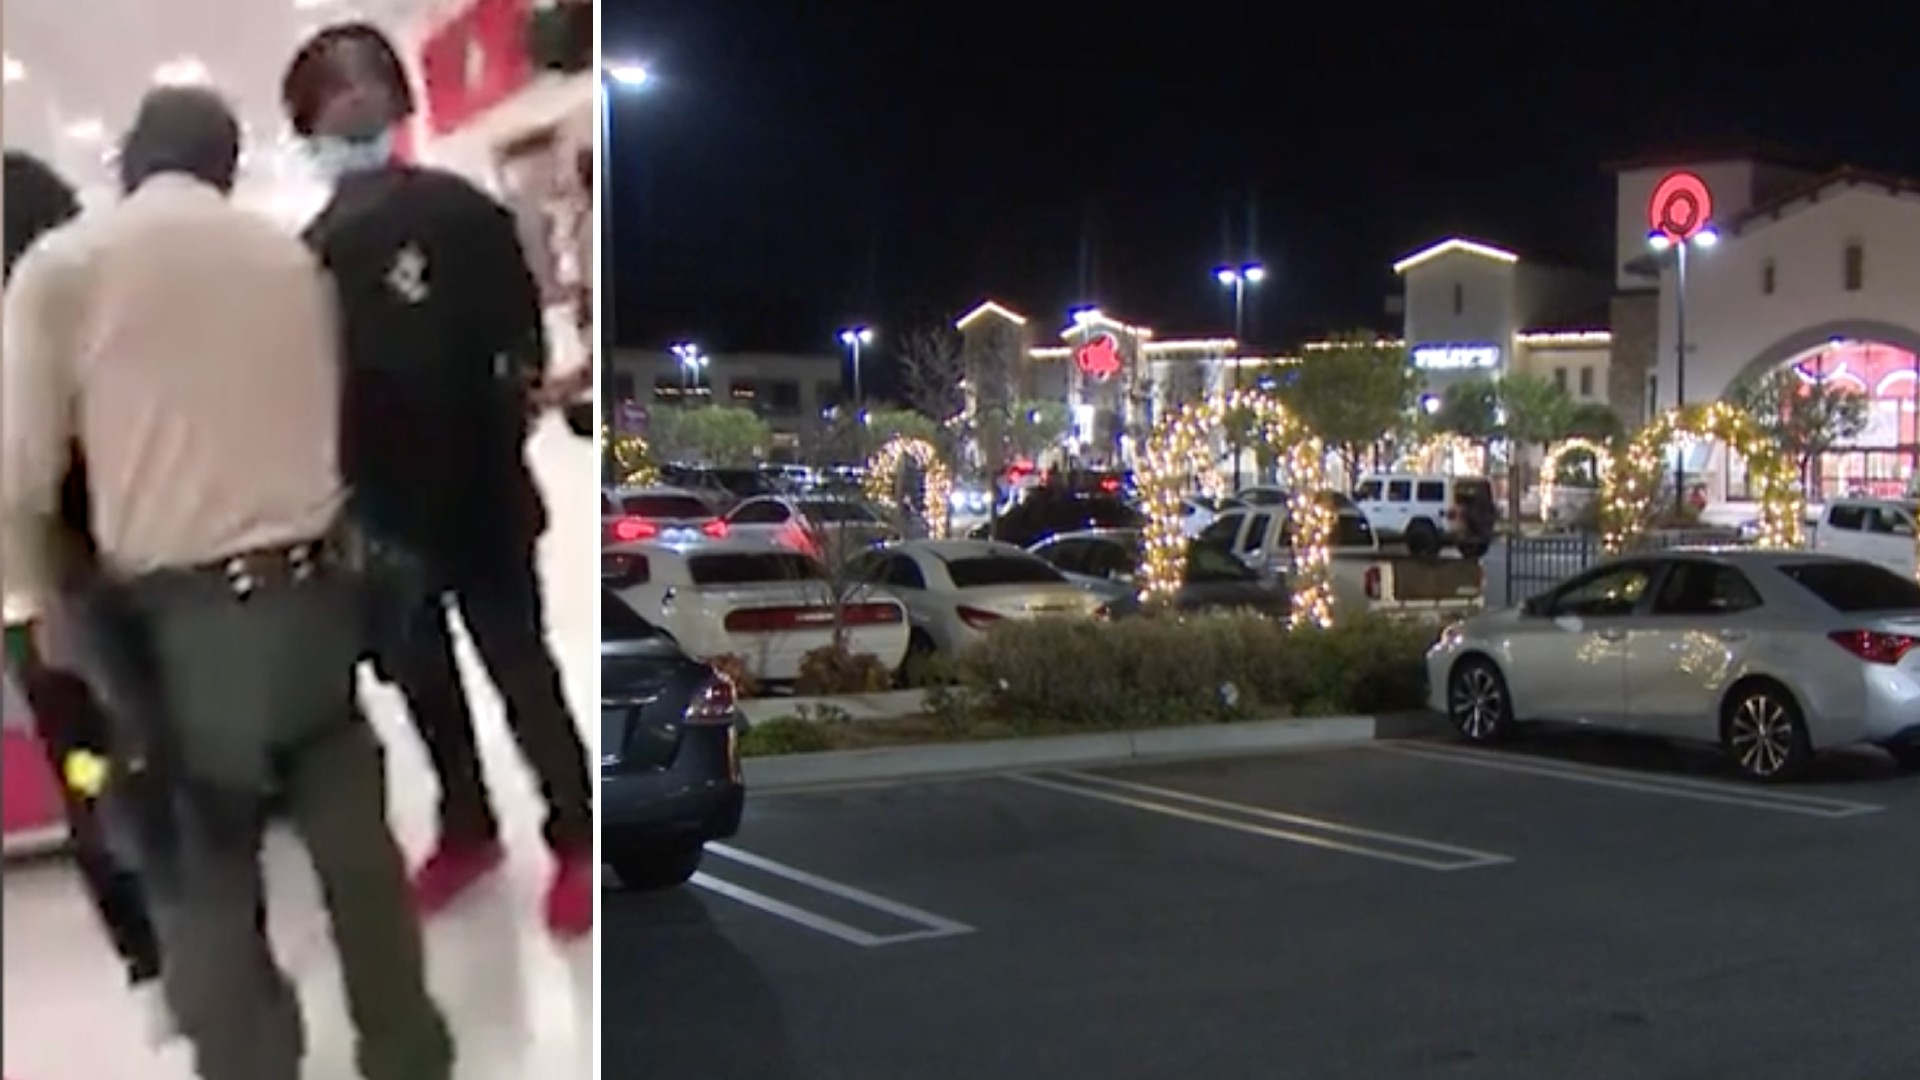 Teens were detained at a Target in Westlake Village on Jan. 17, 2021, an incident caught in a widely circulated video.